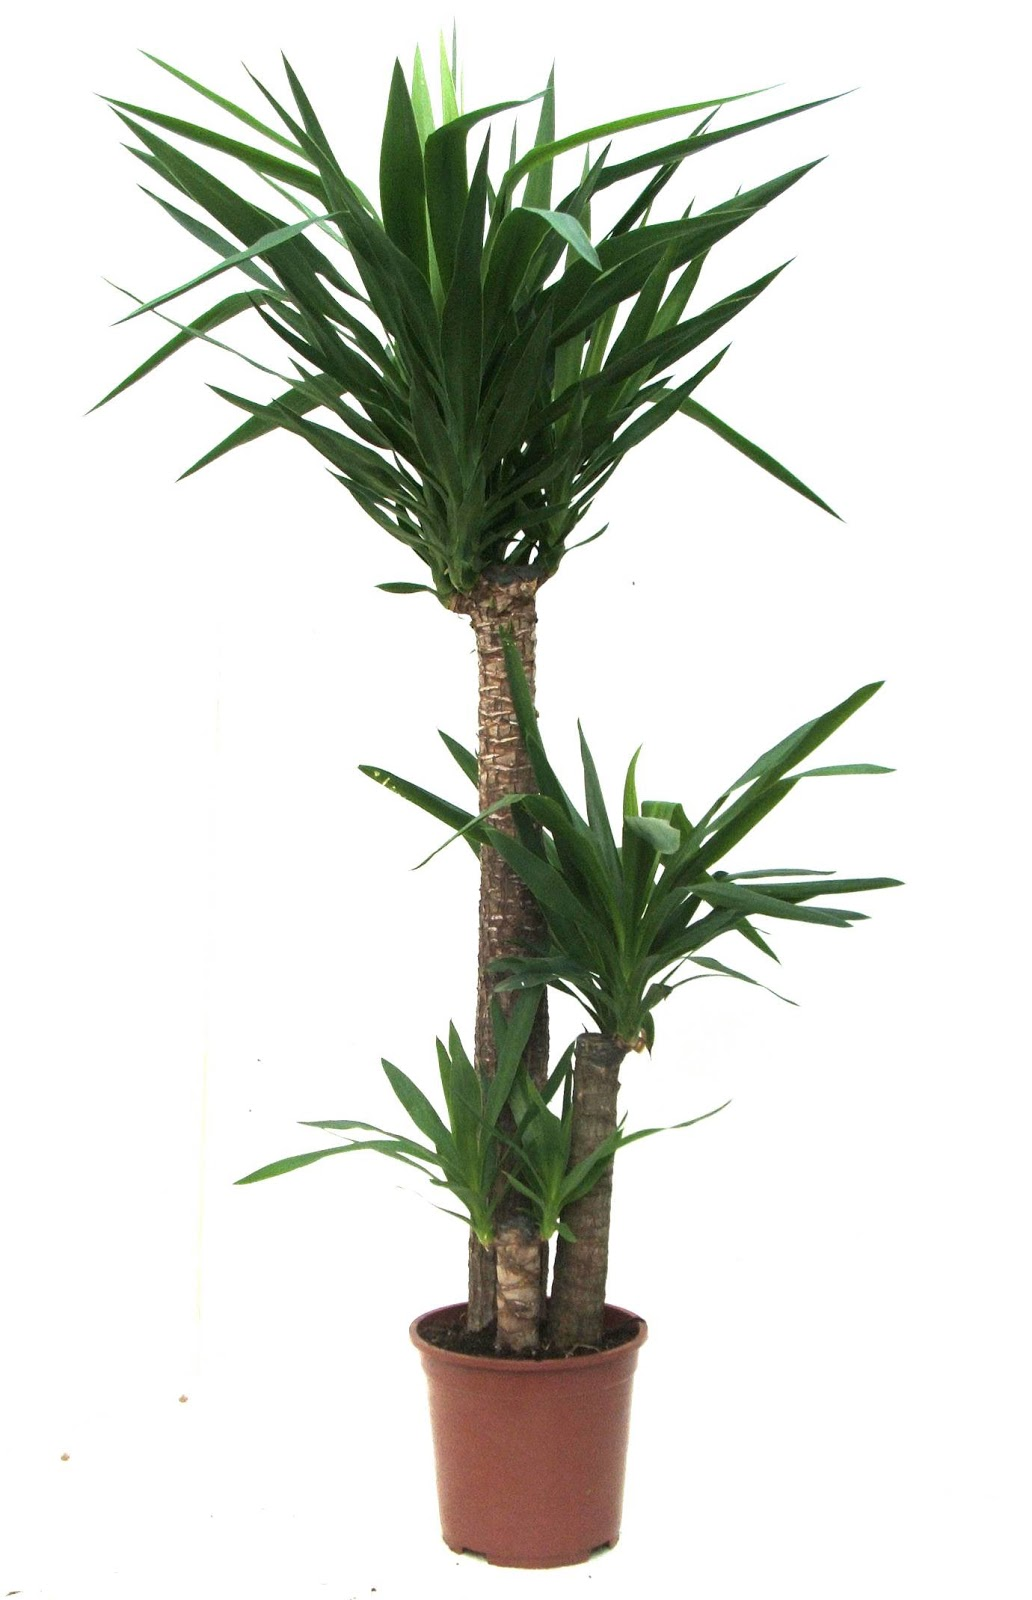 Bamboo lamp photo bamboo house plant Images of indoor plants